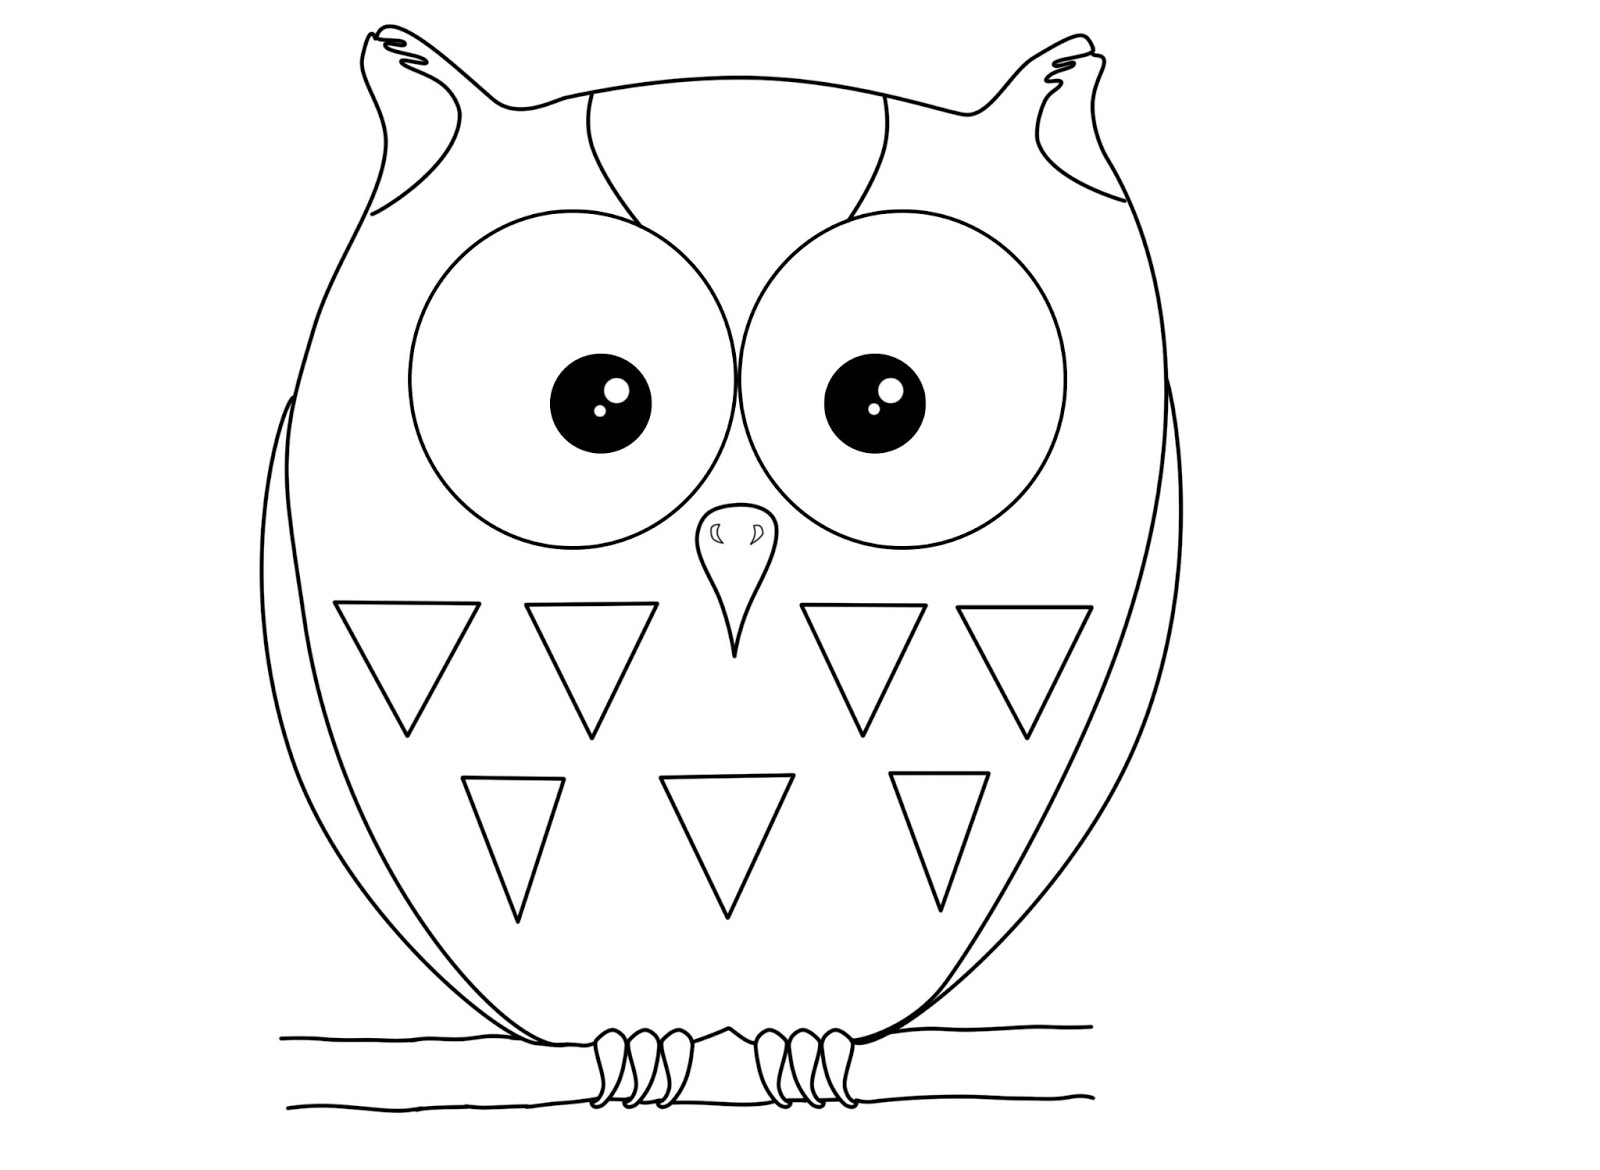 carla taylor illustration character design owl